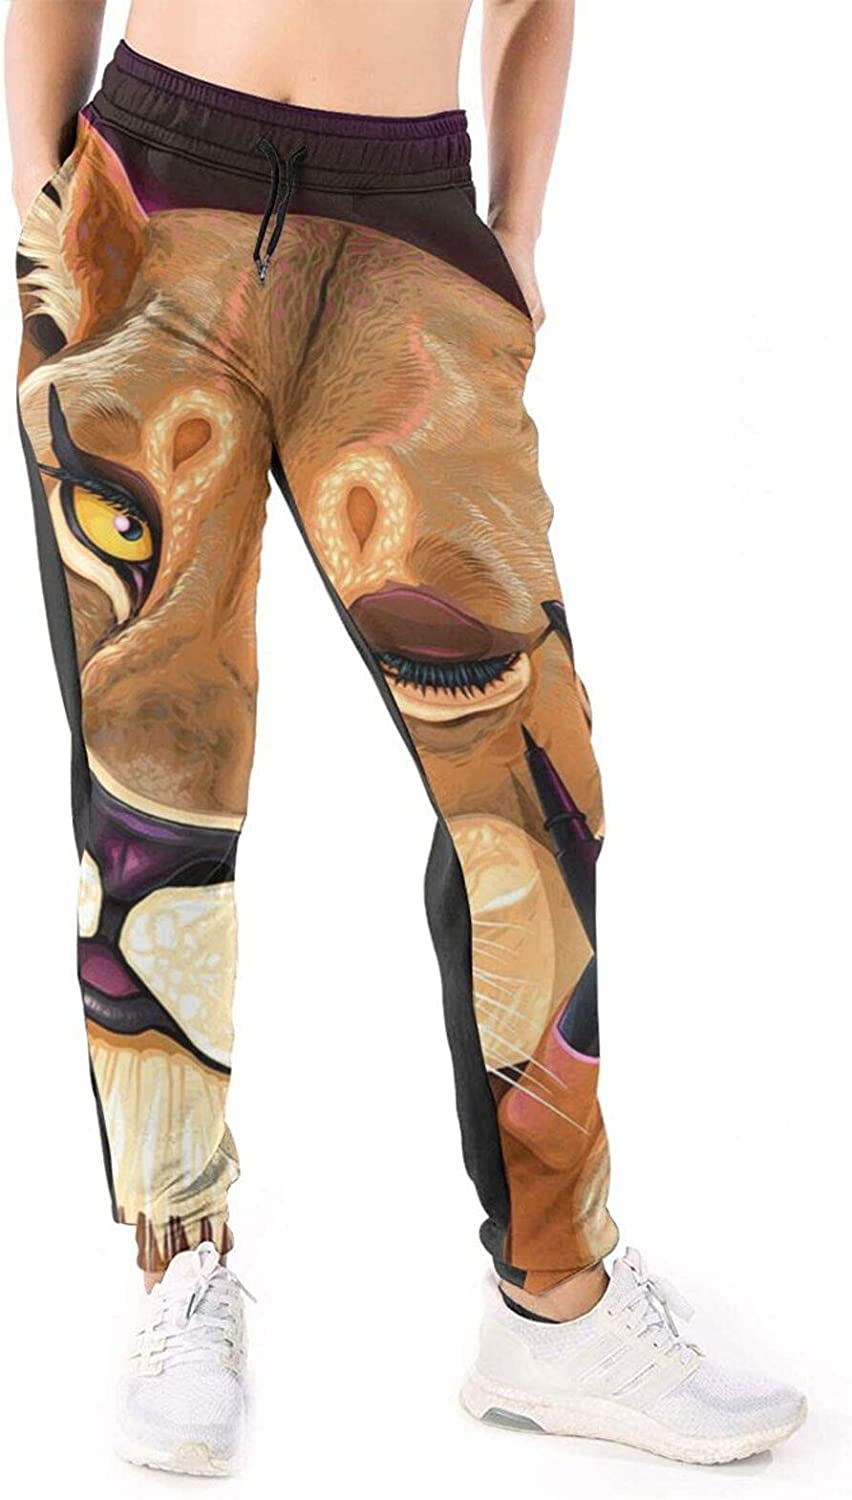 LONEA Women Joggers Pants Lady Leopard Draws Eyeline Athletic Sweatpants with Pockets Casual Trousers Baggy